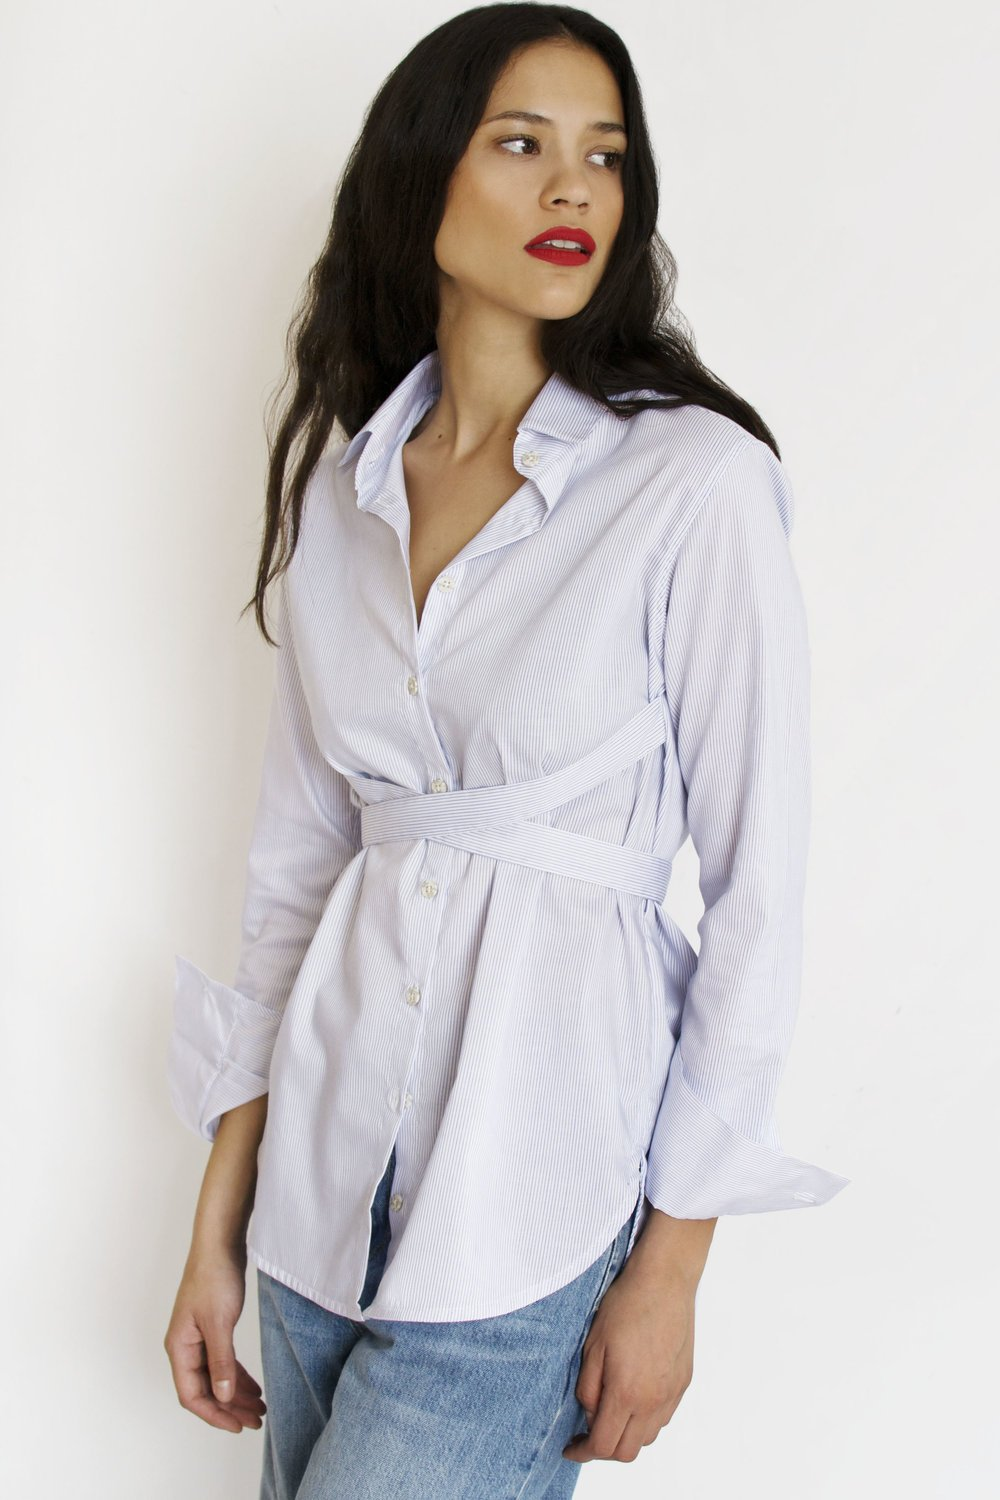 Strap Shirt | White Shirts from JETTI curated by pu·rist